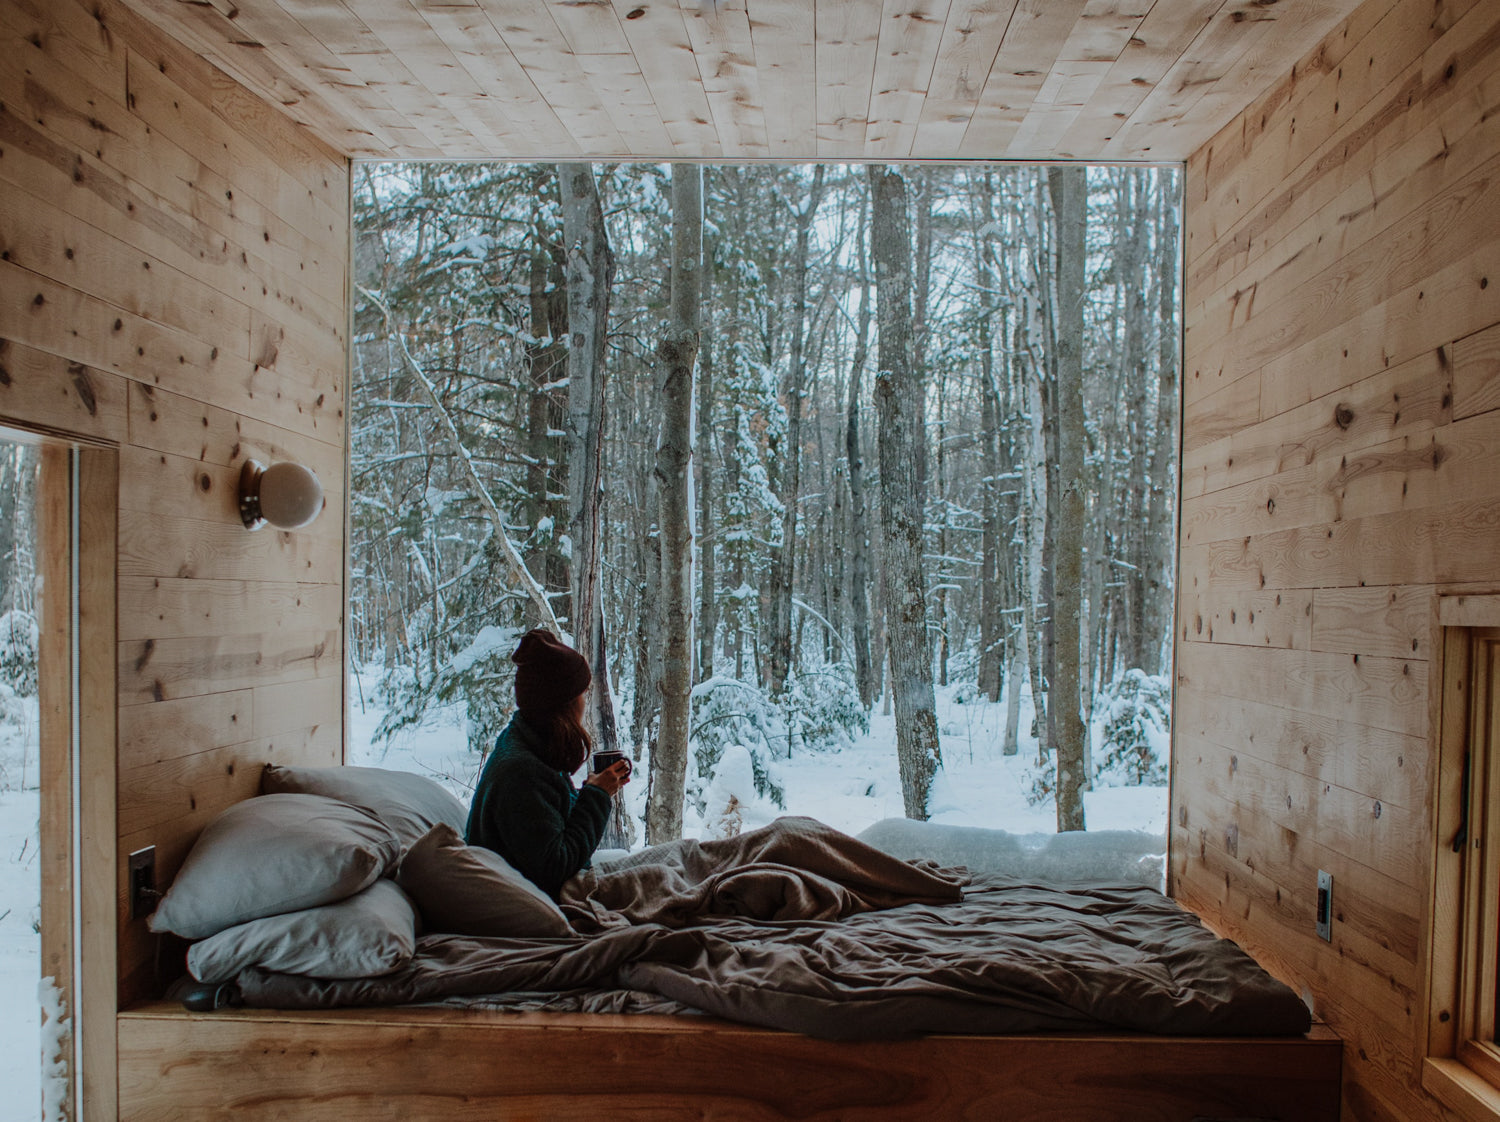 Girl looking out at snowy forest